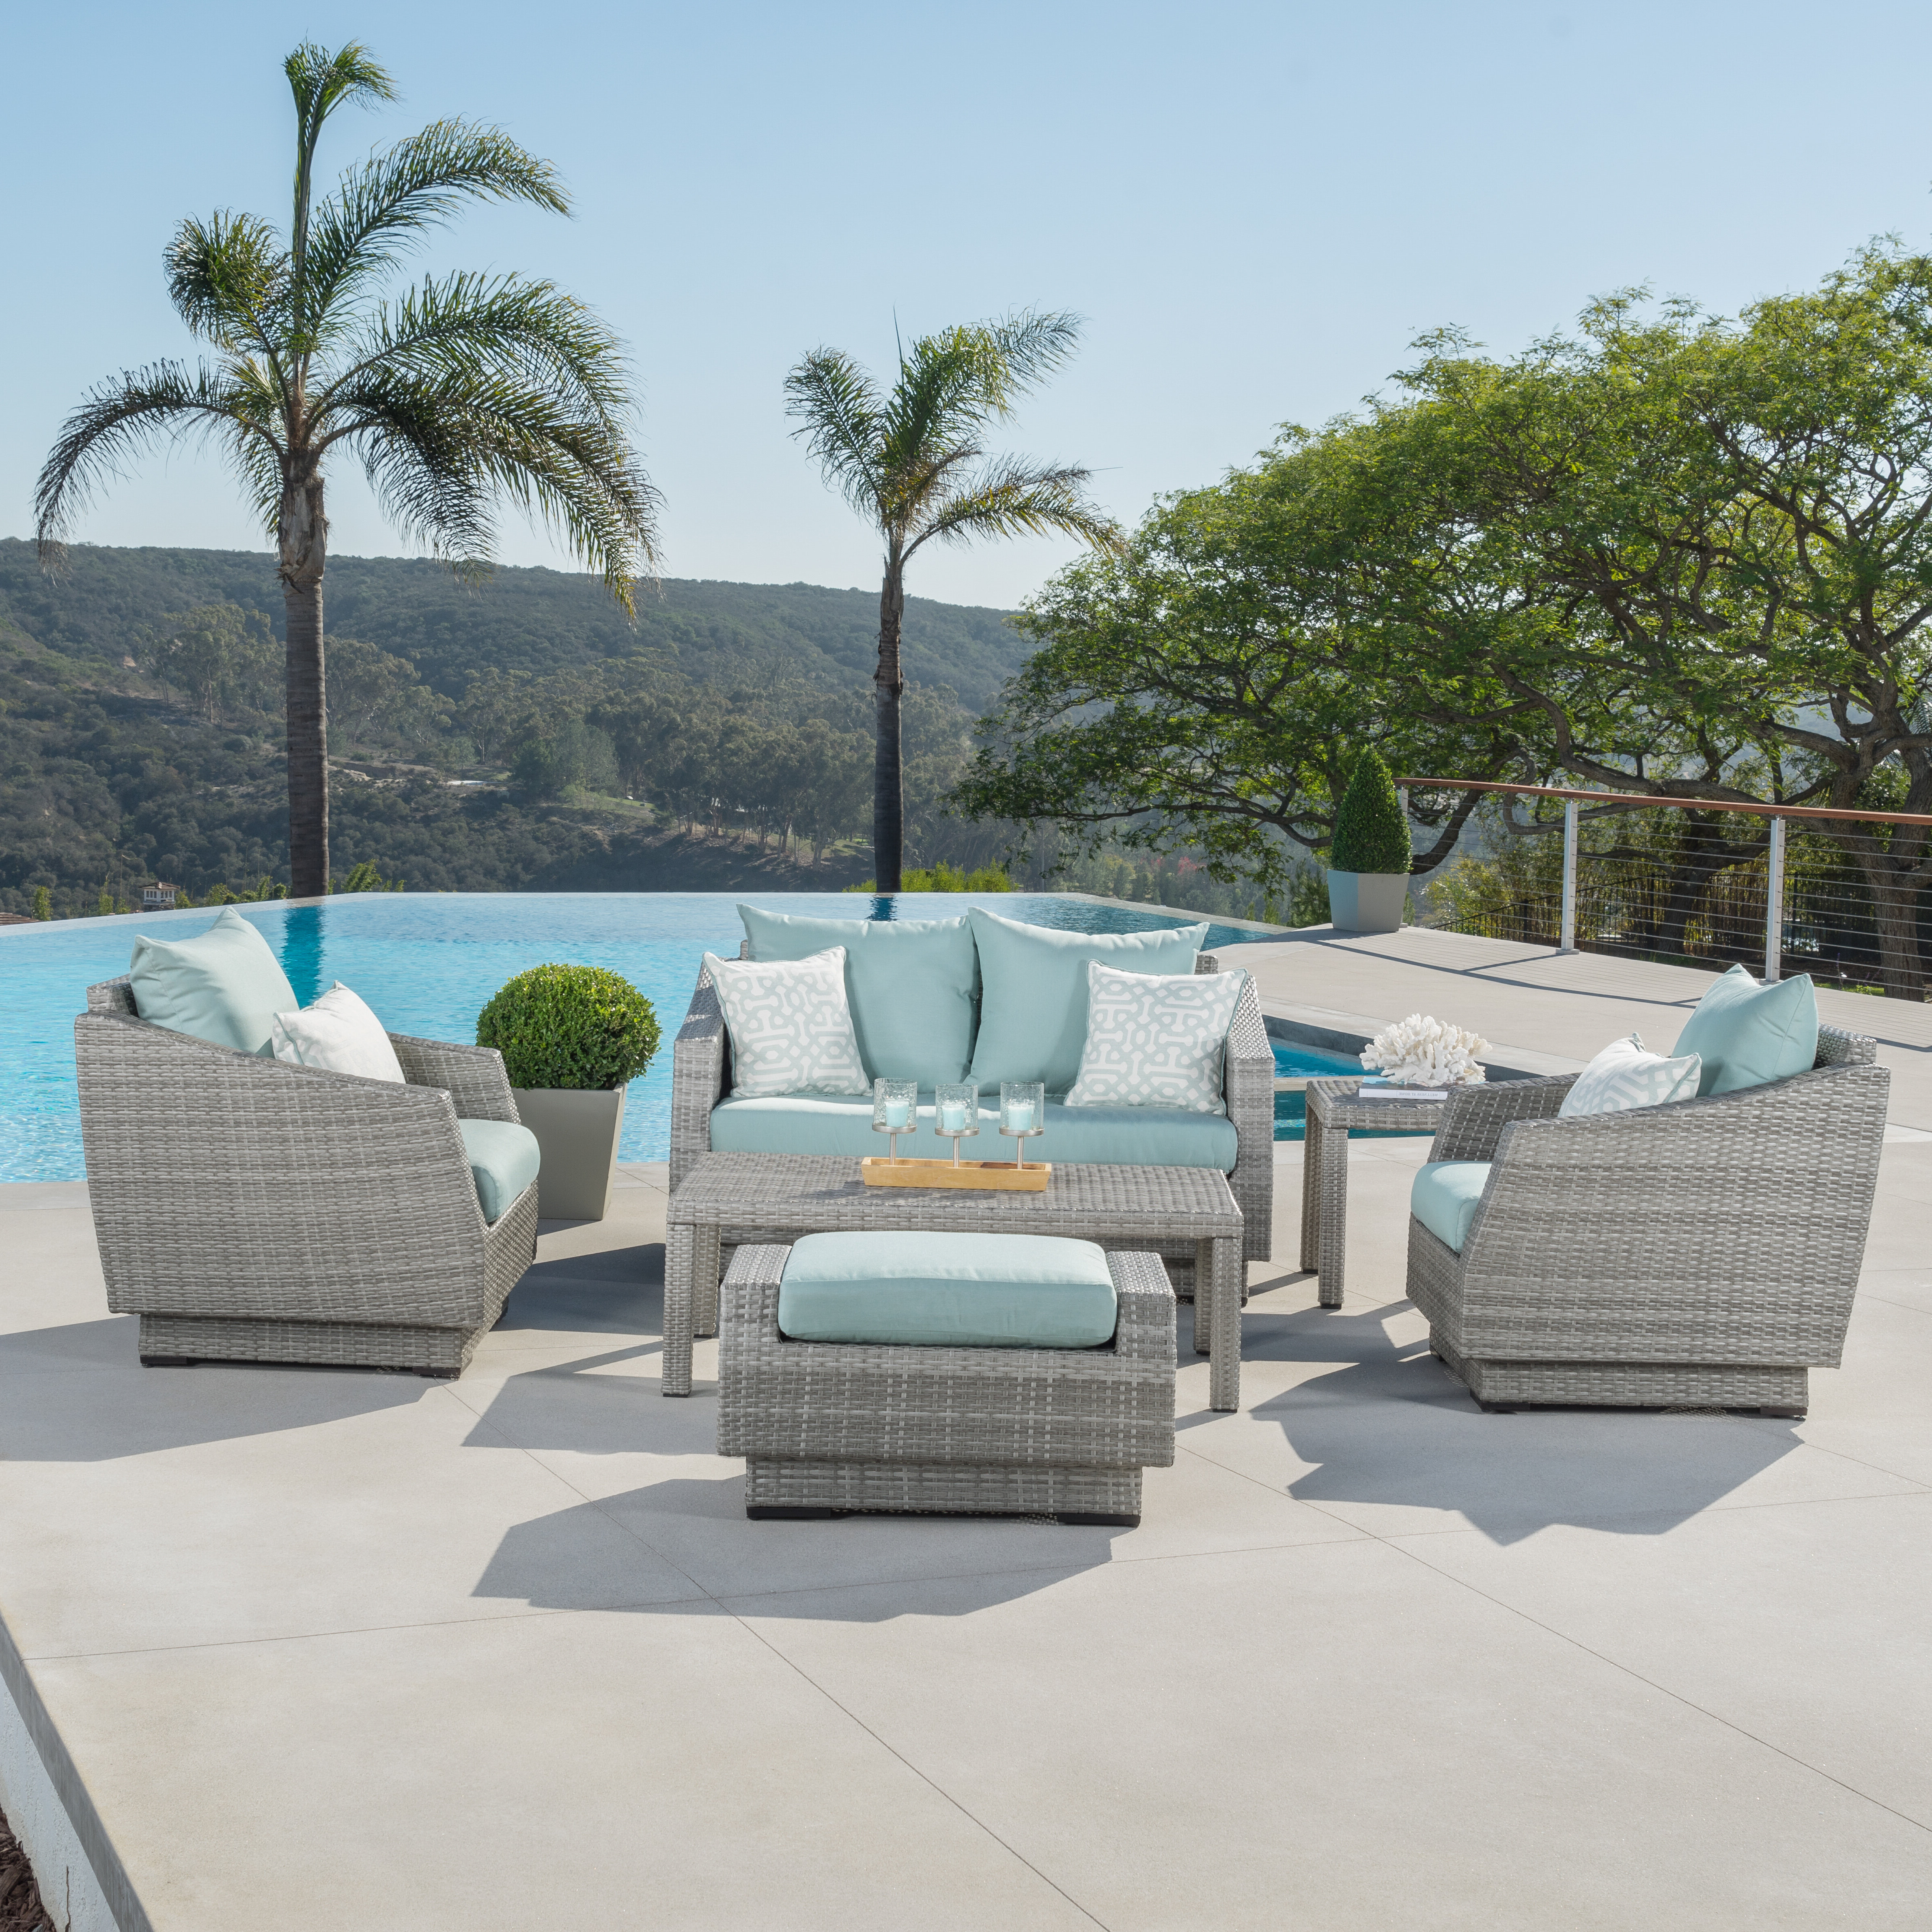 Castelli 6 Piece Sofa Set With Sunbrella Cushions Intended For Popular Castelli Patio Sofas With Sunbrella Cushions (View 4 of 20)